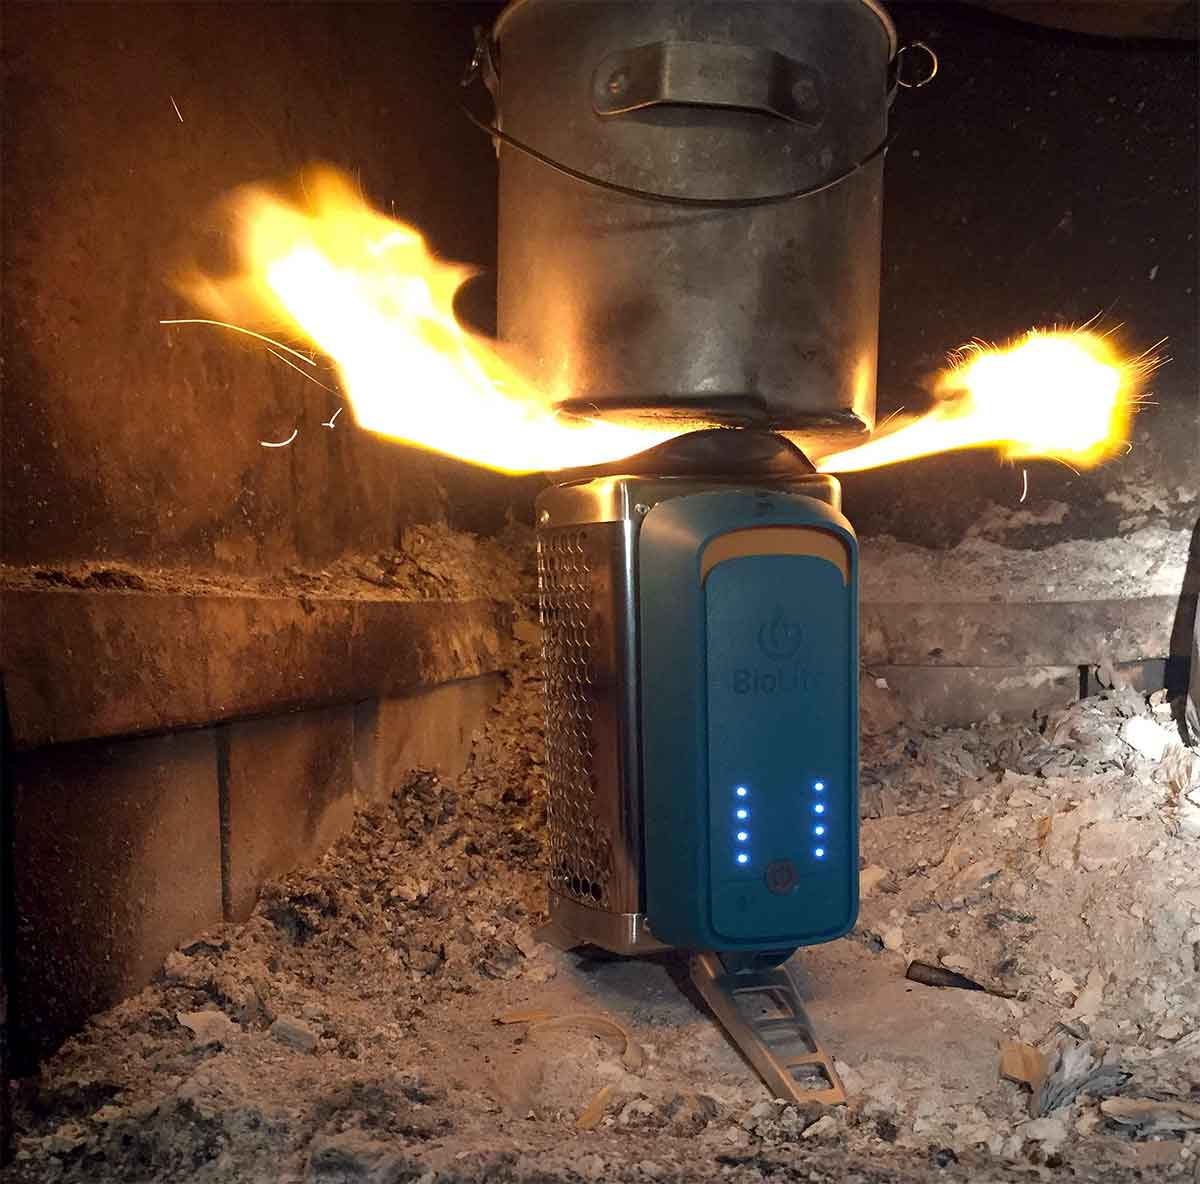 CookStove' Has Fan To Stoke Blaze | GearJunkie